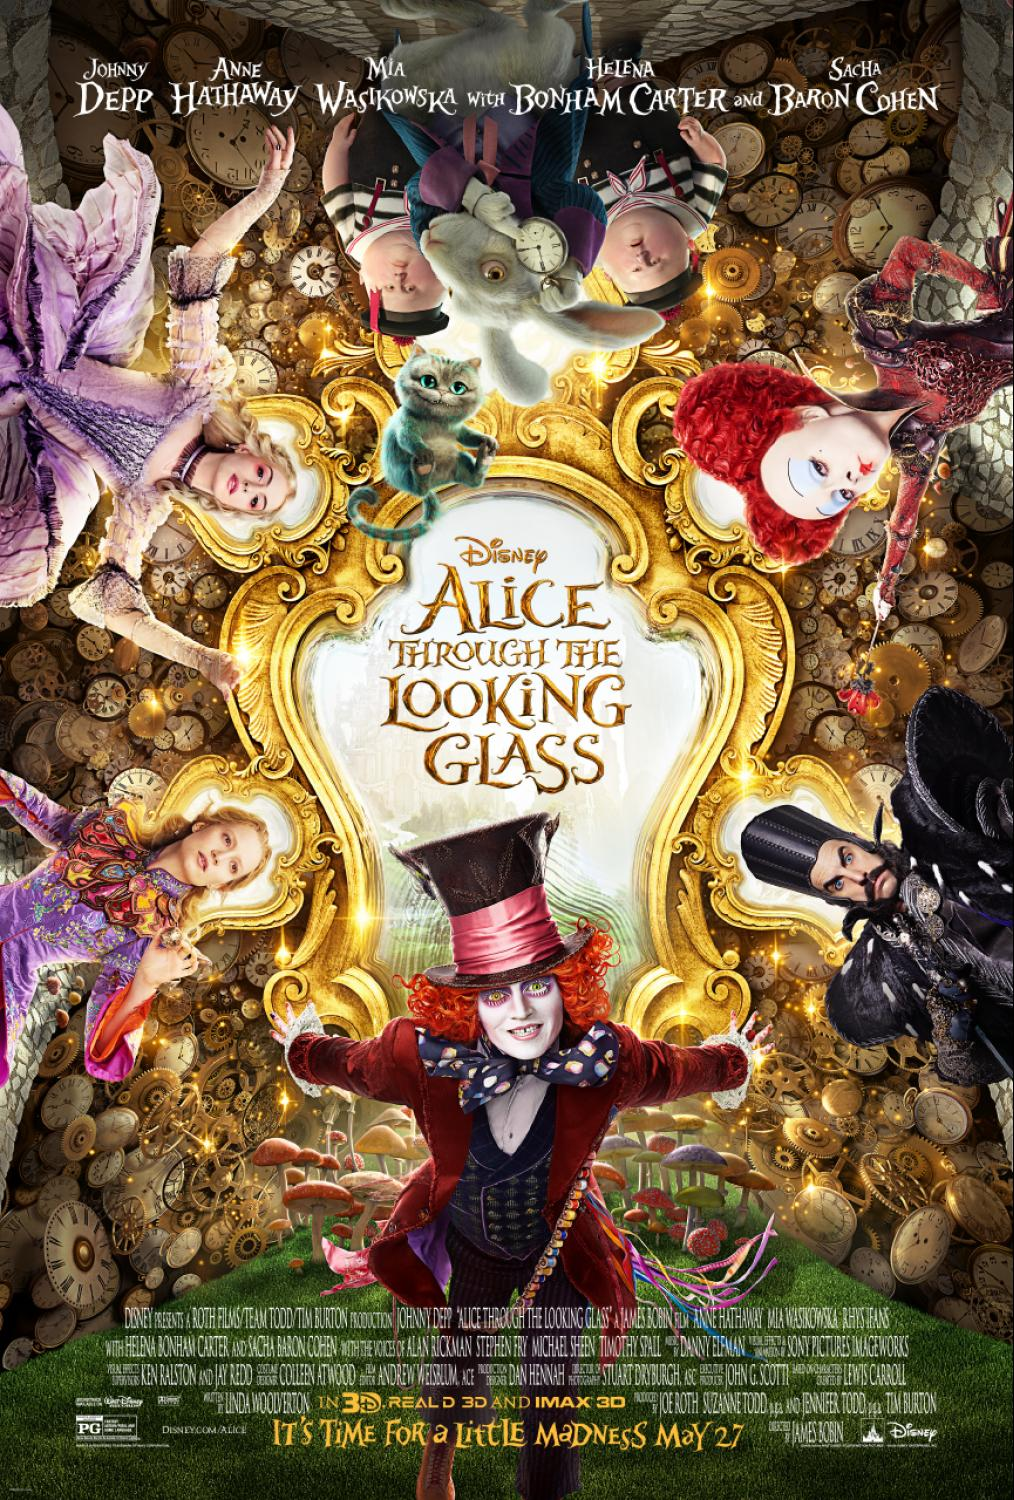 Through The Looking Glass Quotes Mom Among Chaos Alice Through Looking Glass 2016